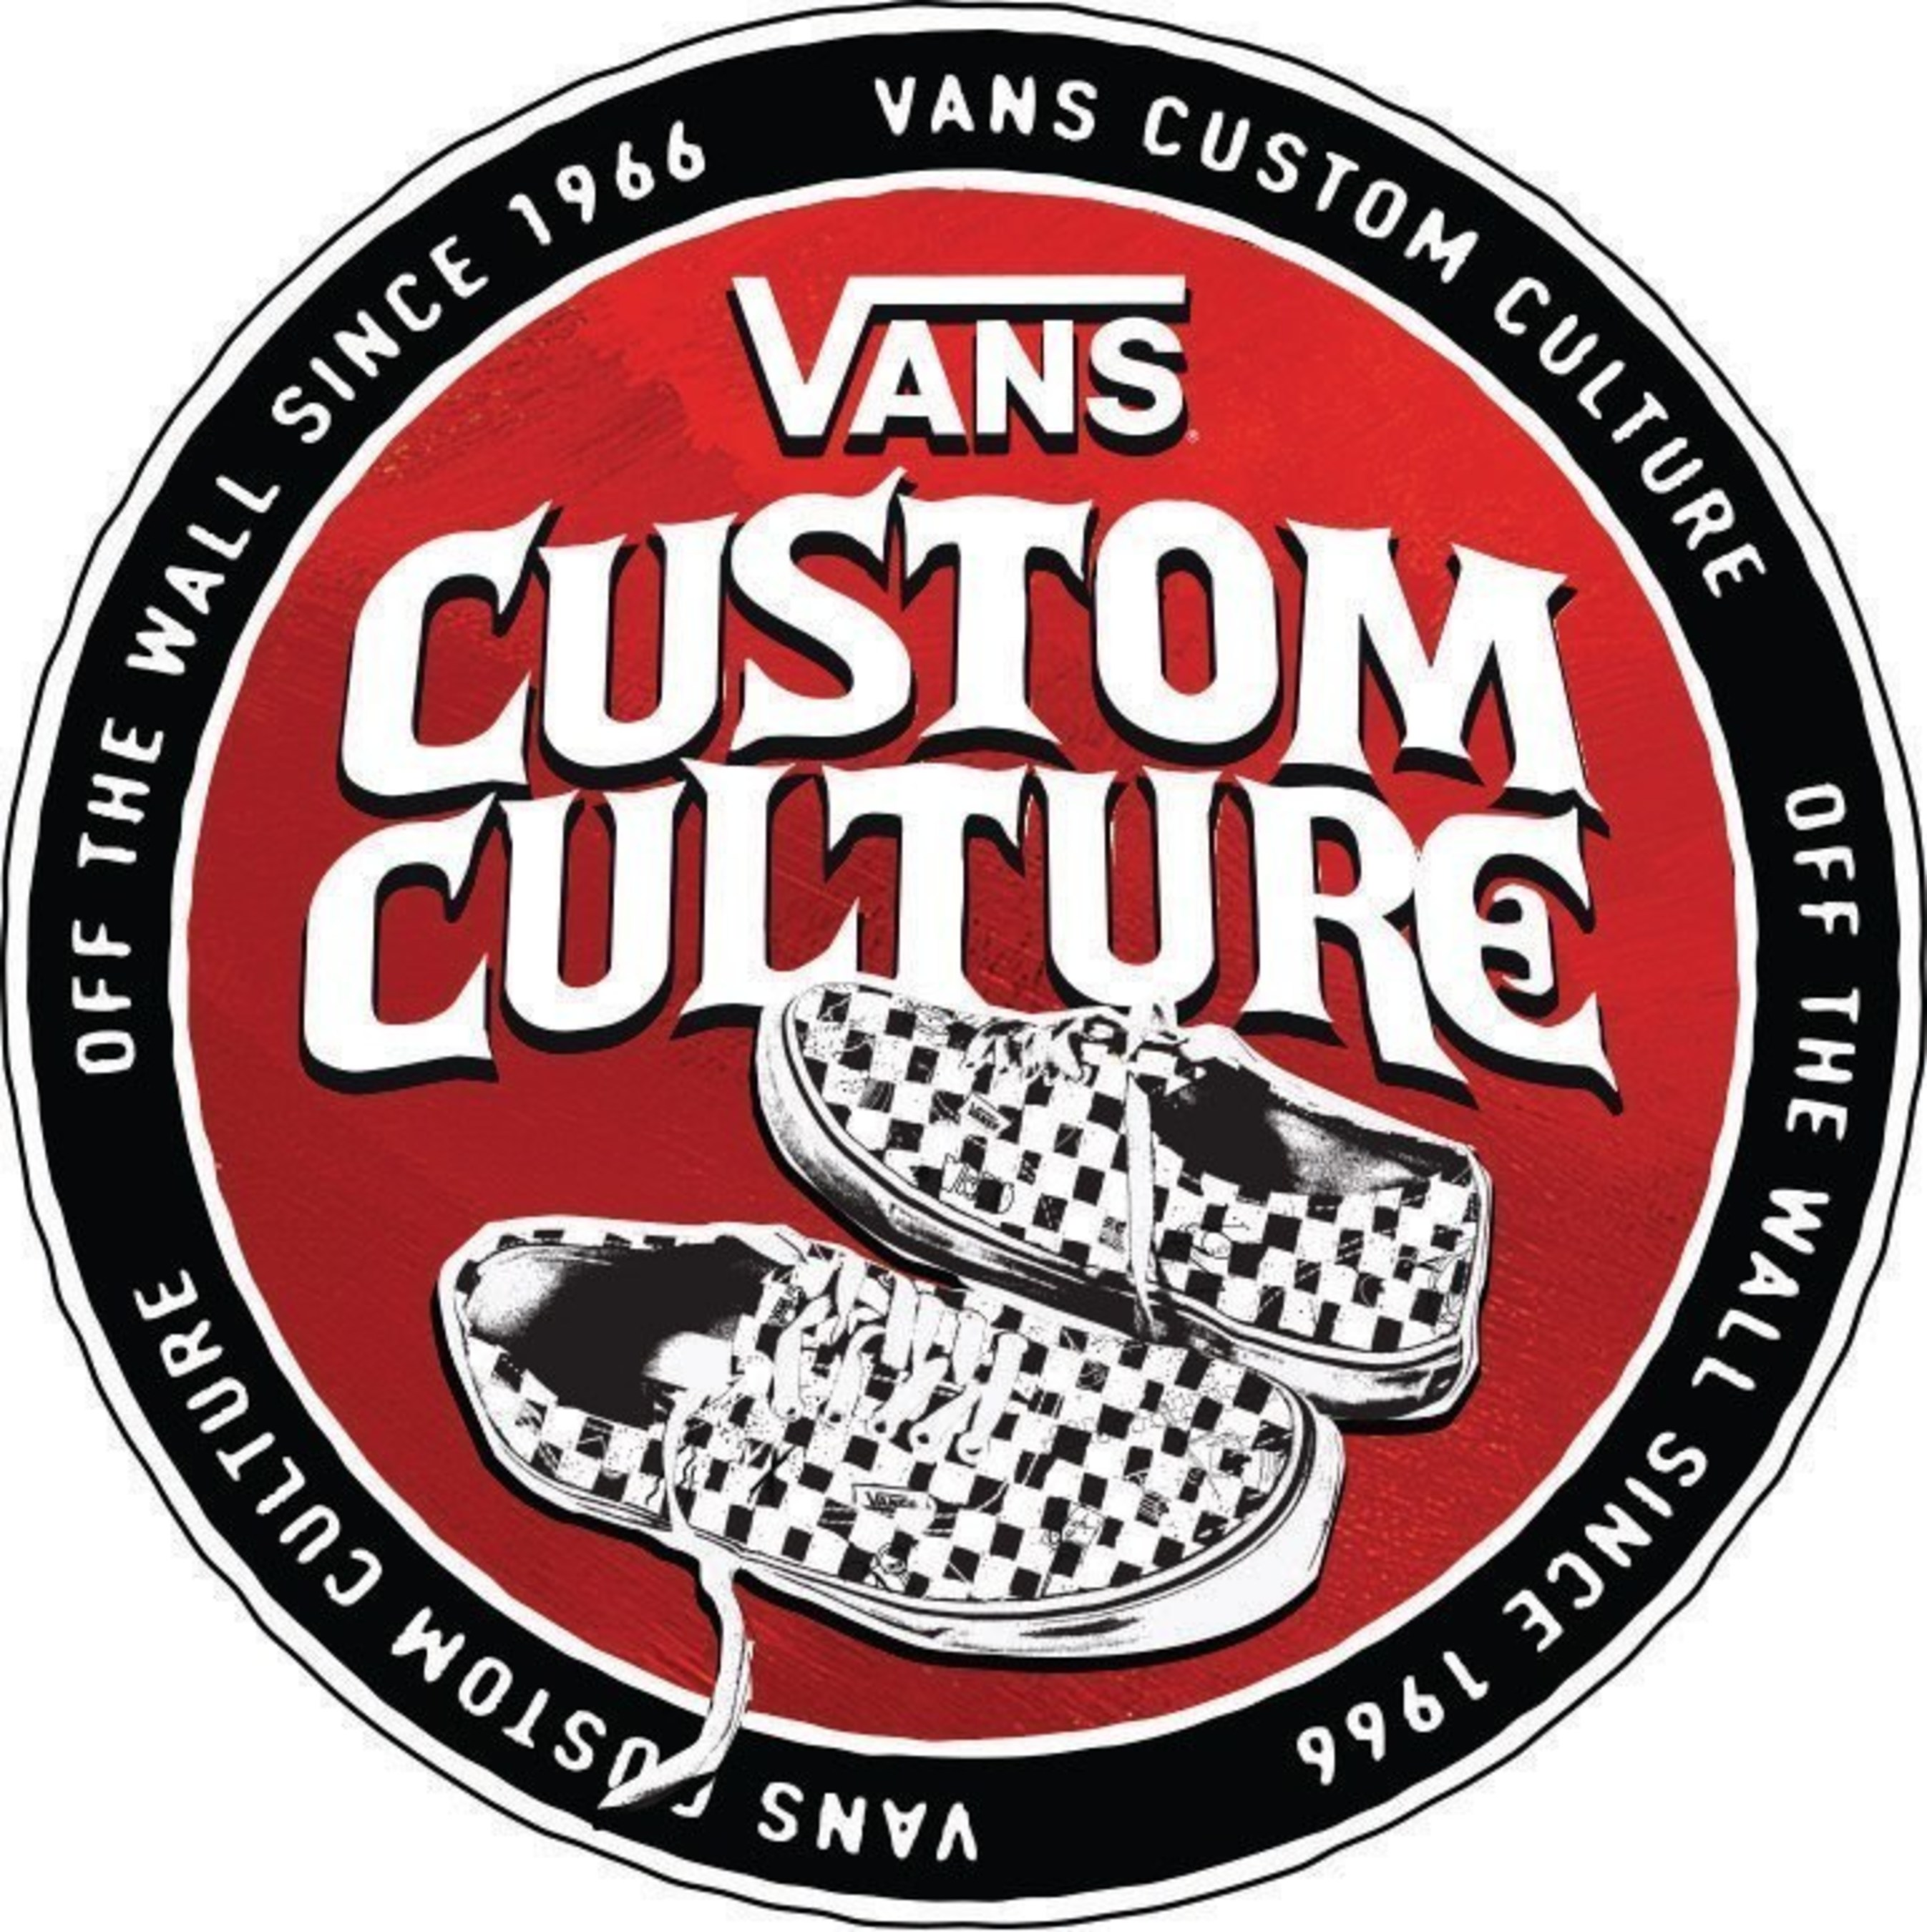 Vote for Art: Vans invites fans to express their #RightToArt by voting in the Vans Custom Culture design competition. Place your vote now at Vans.com/CustomCulture.